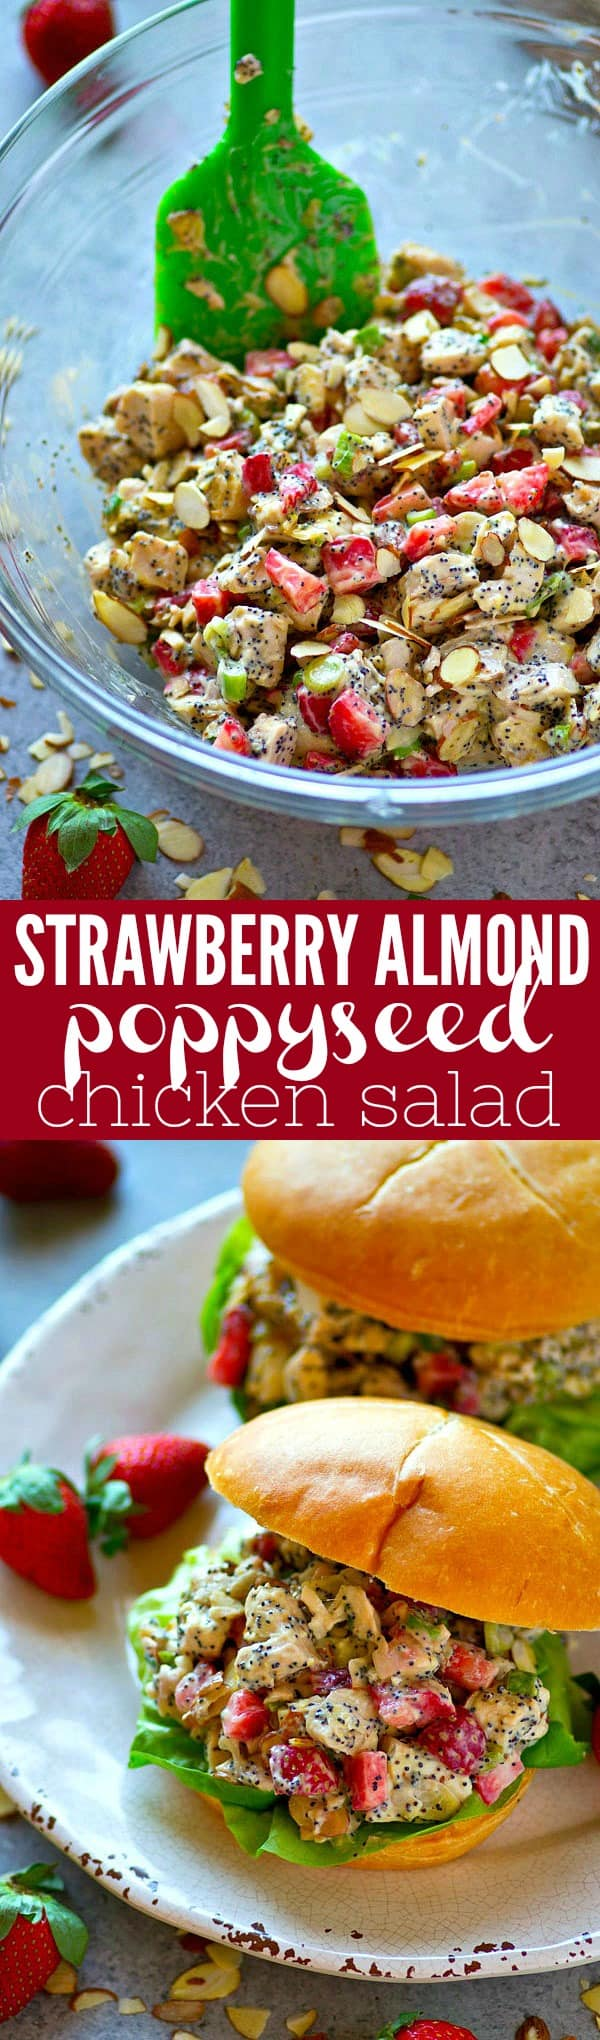 Juicy strawberries and crunchy almonds and poppyseeds make for the BEST trio in this gorgeous and incredibly easy strawberry almond poppyseed chicken salad! Perfect for any spring gathering.